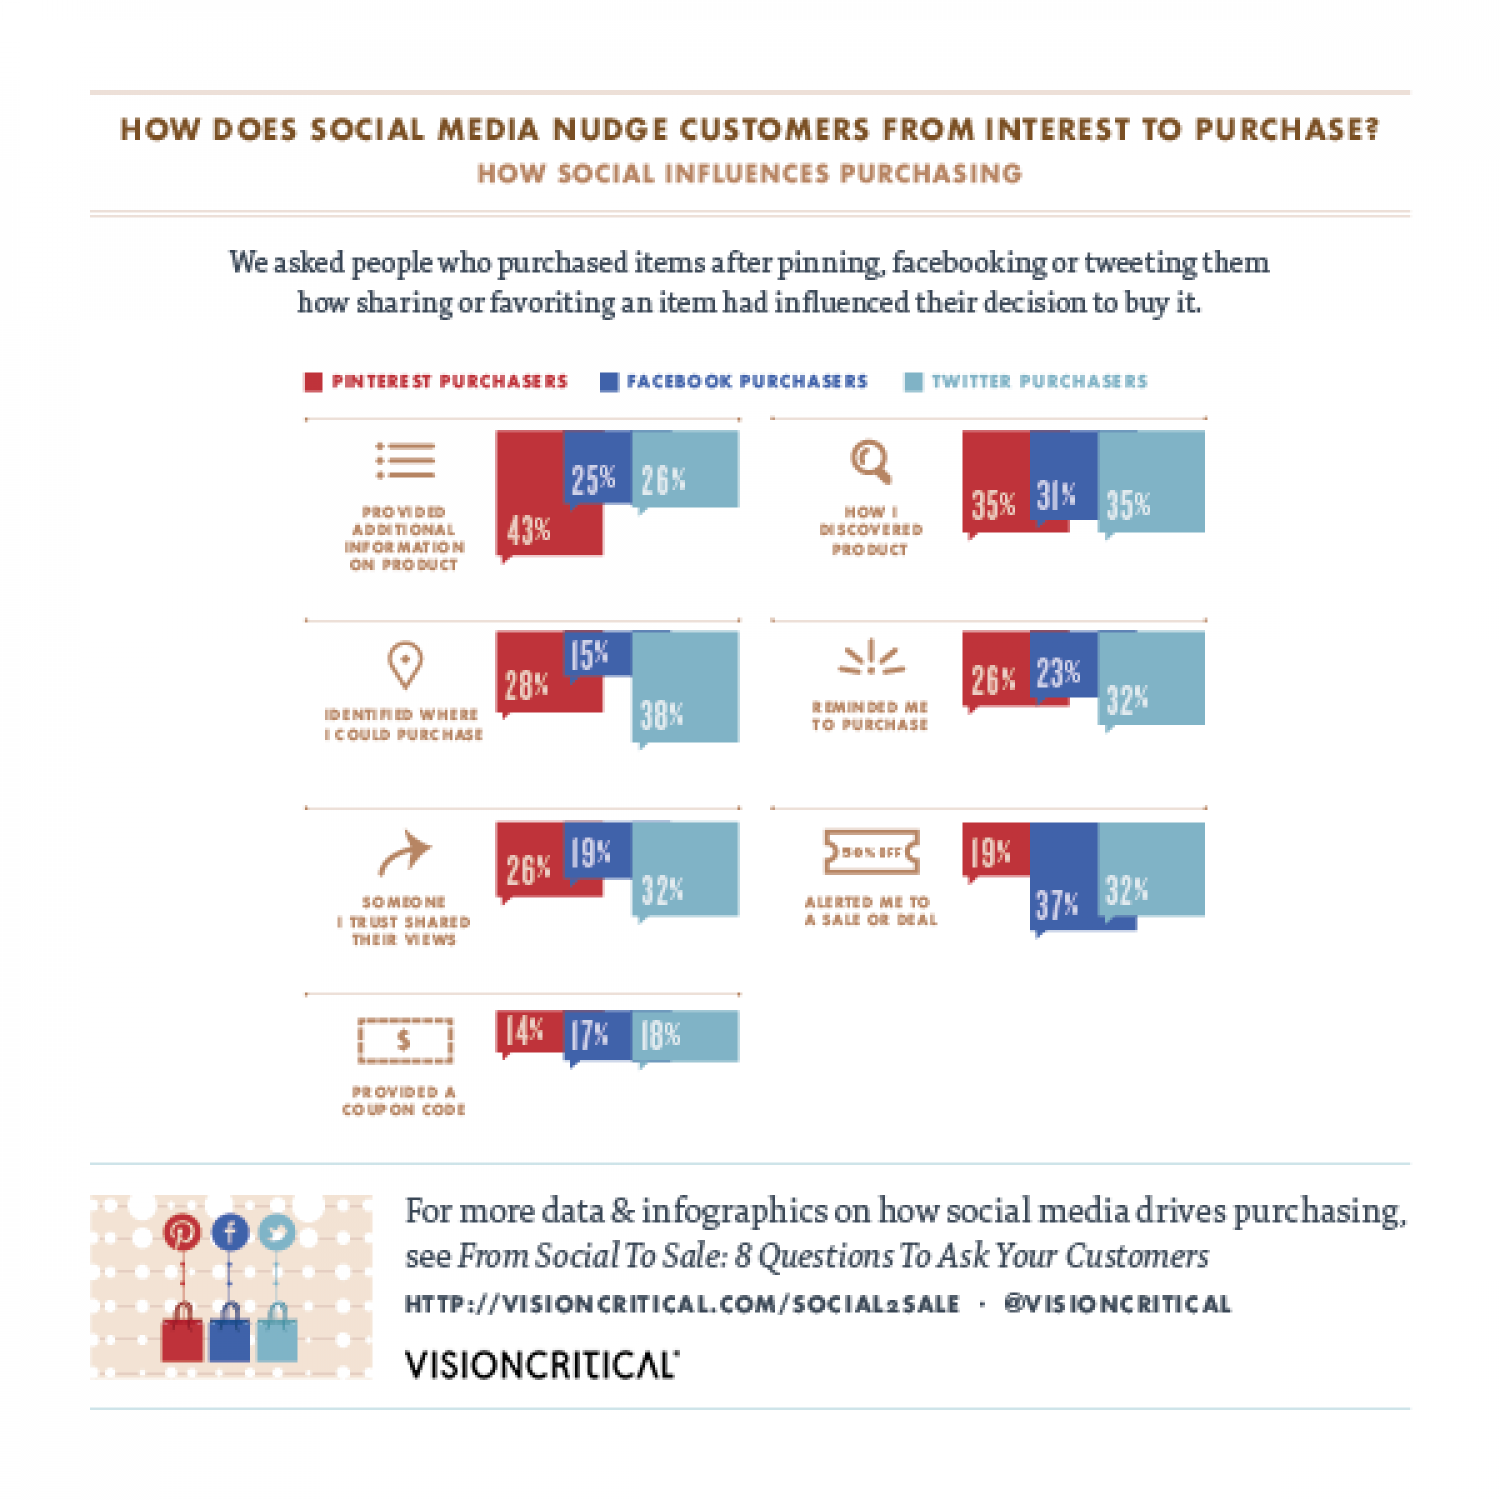 From Social to Sale: How Does Social Media Nudge Customers From Interest to Purchase? Infographic